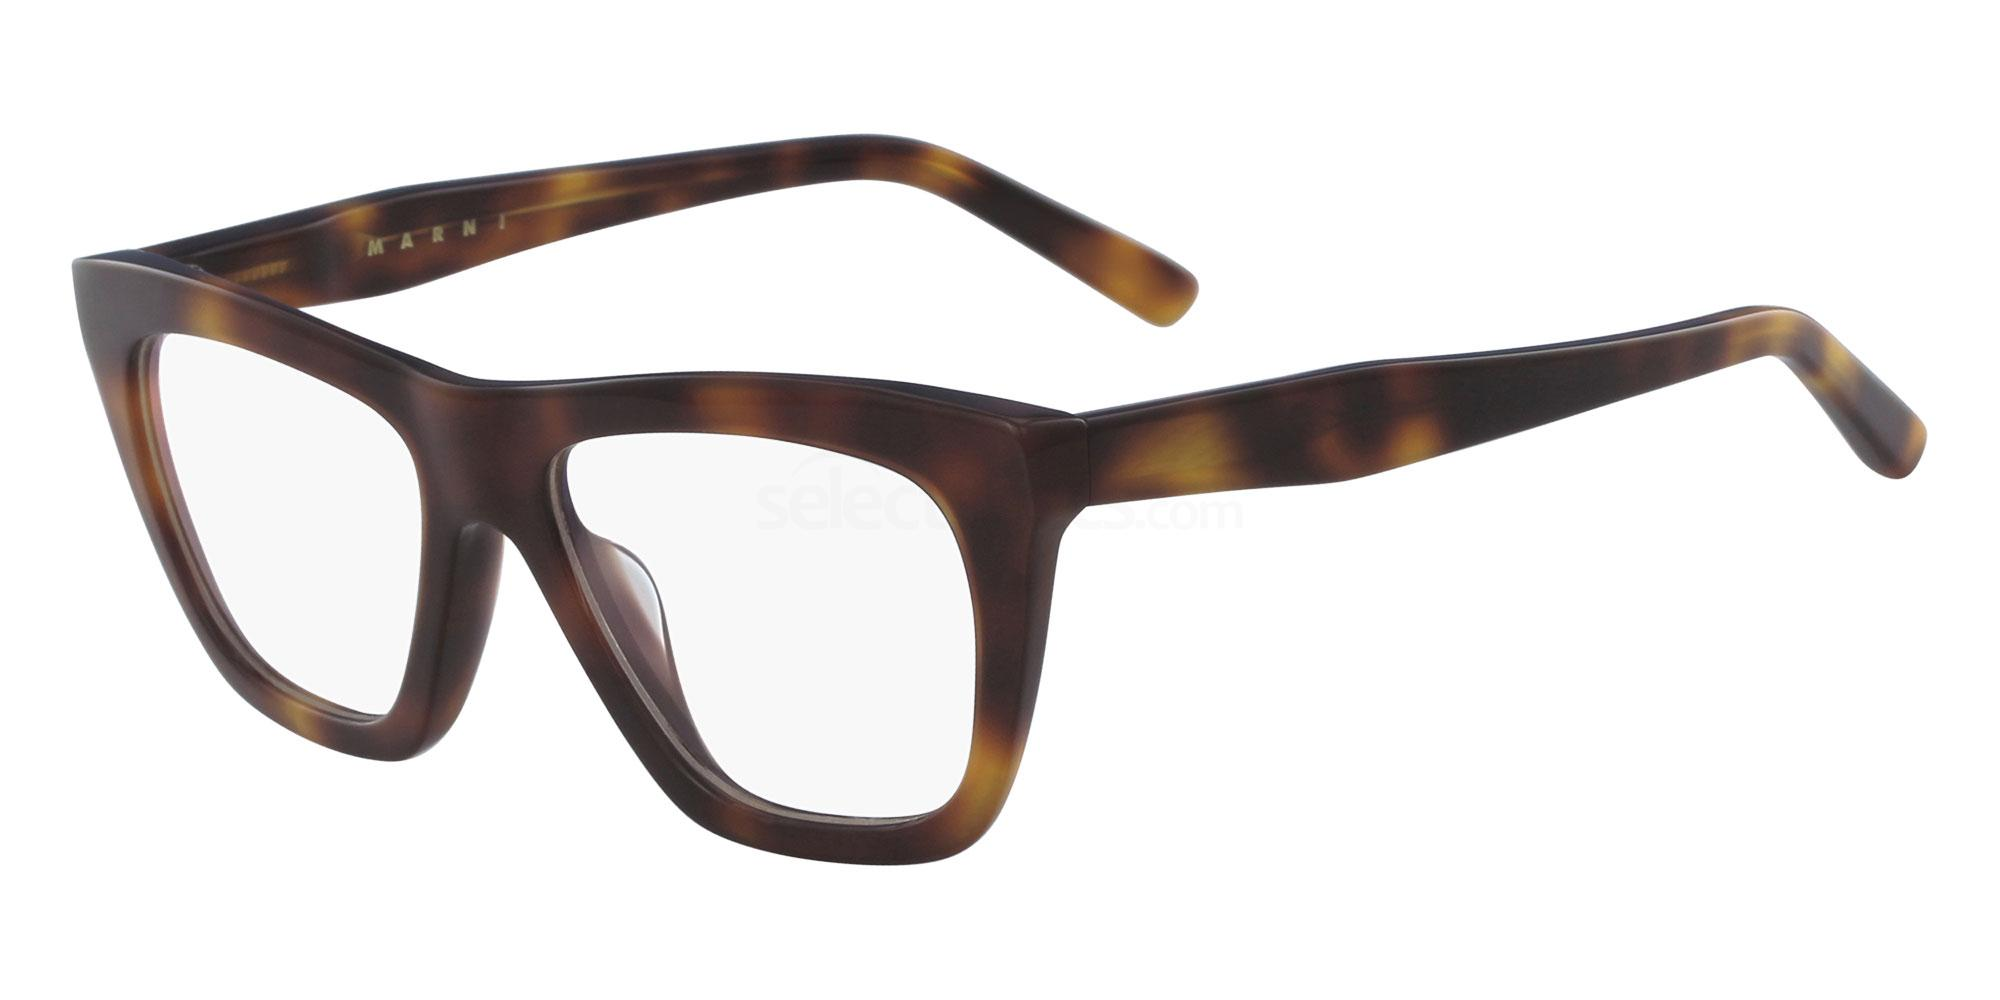 218 ME2619 Glasses, Marni